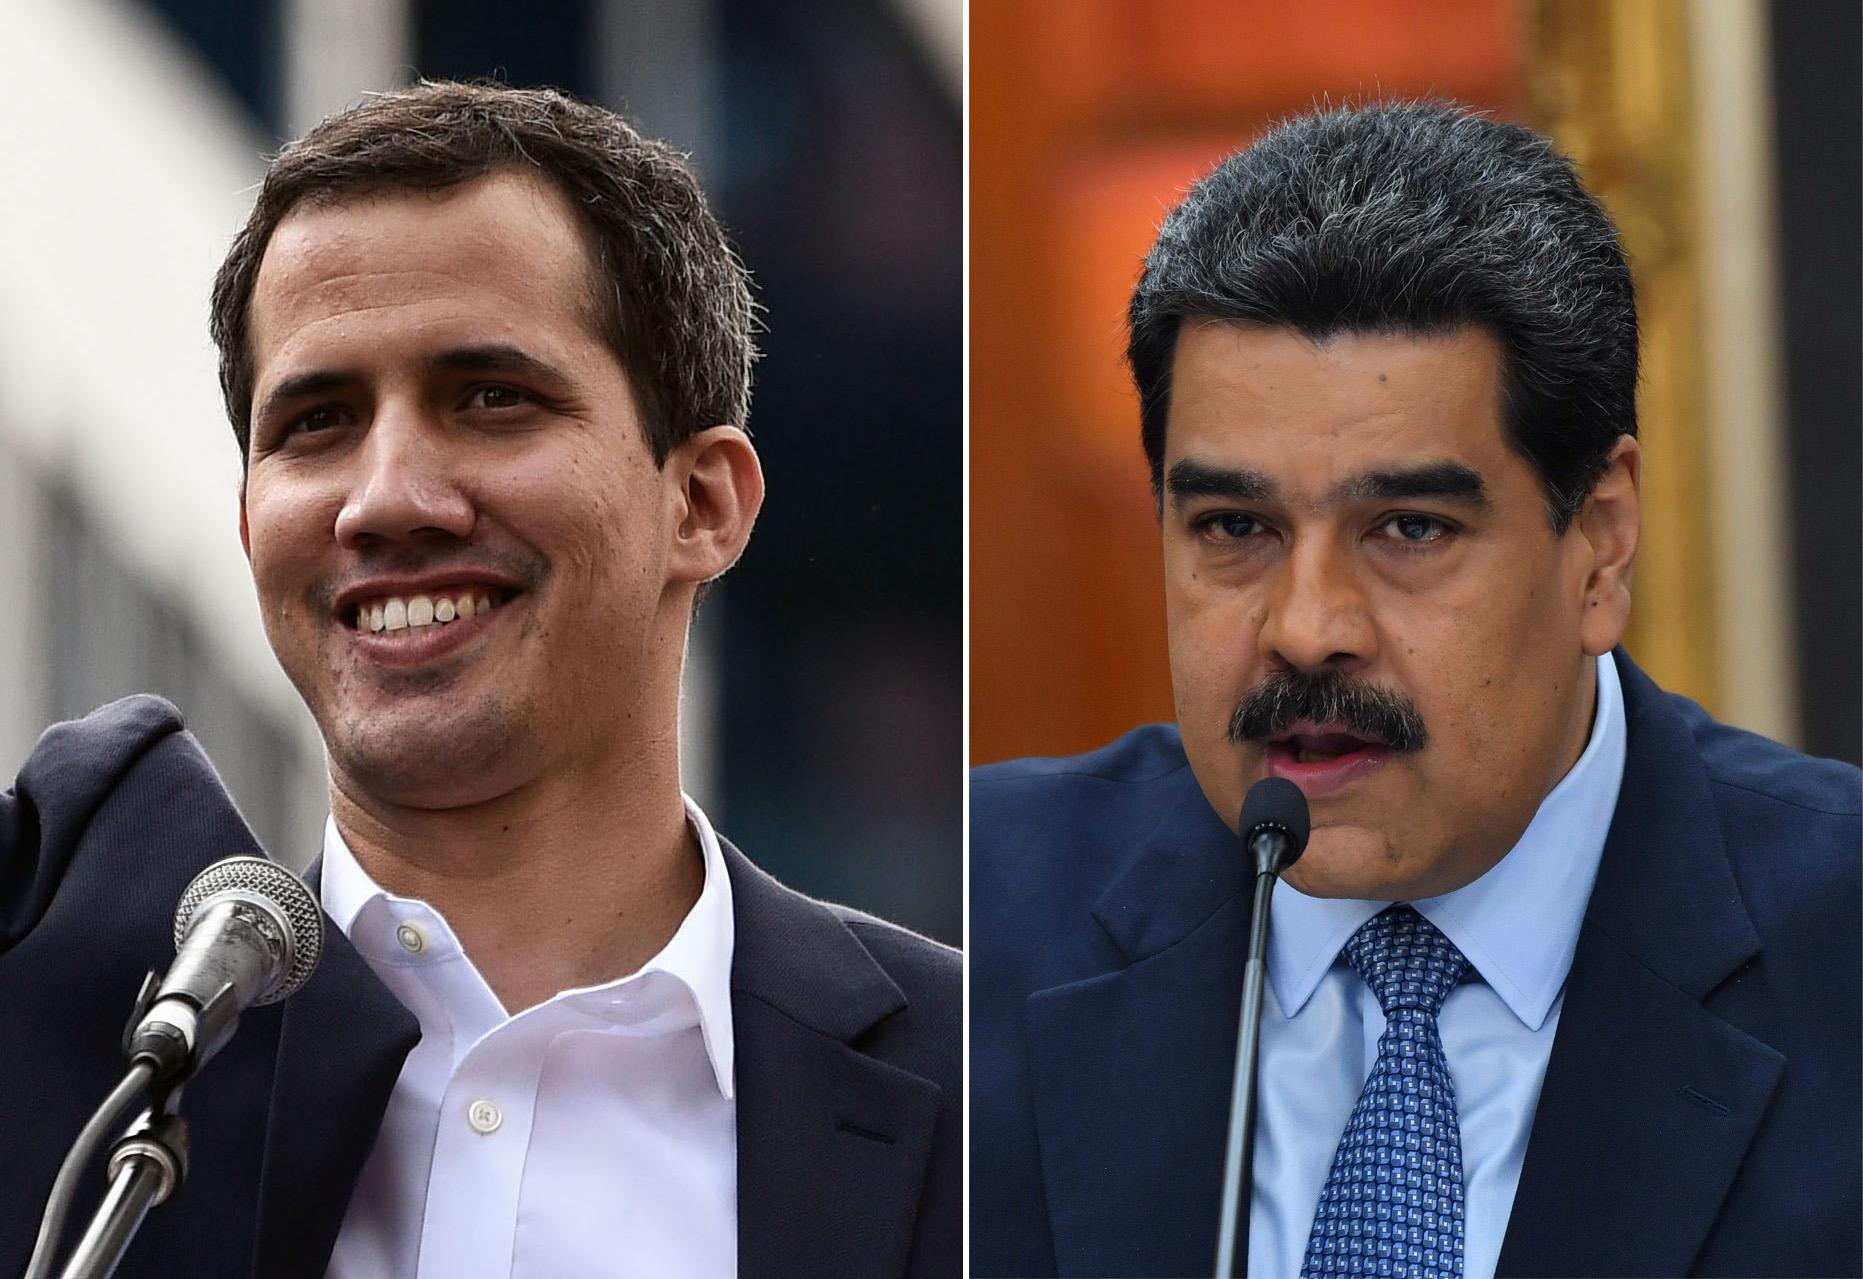 On the left is a photograph of a smiling Juan Guaidó. On the right is a photo of Nicolás Maduro.